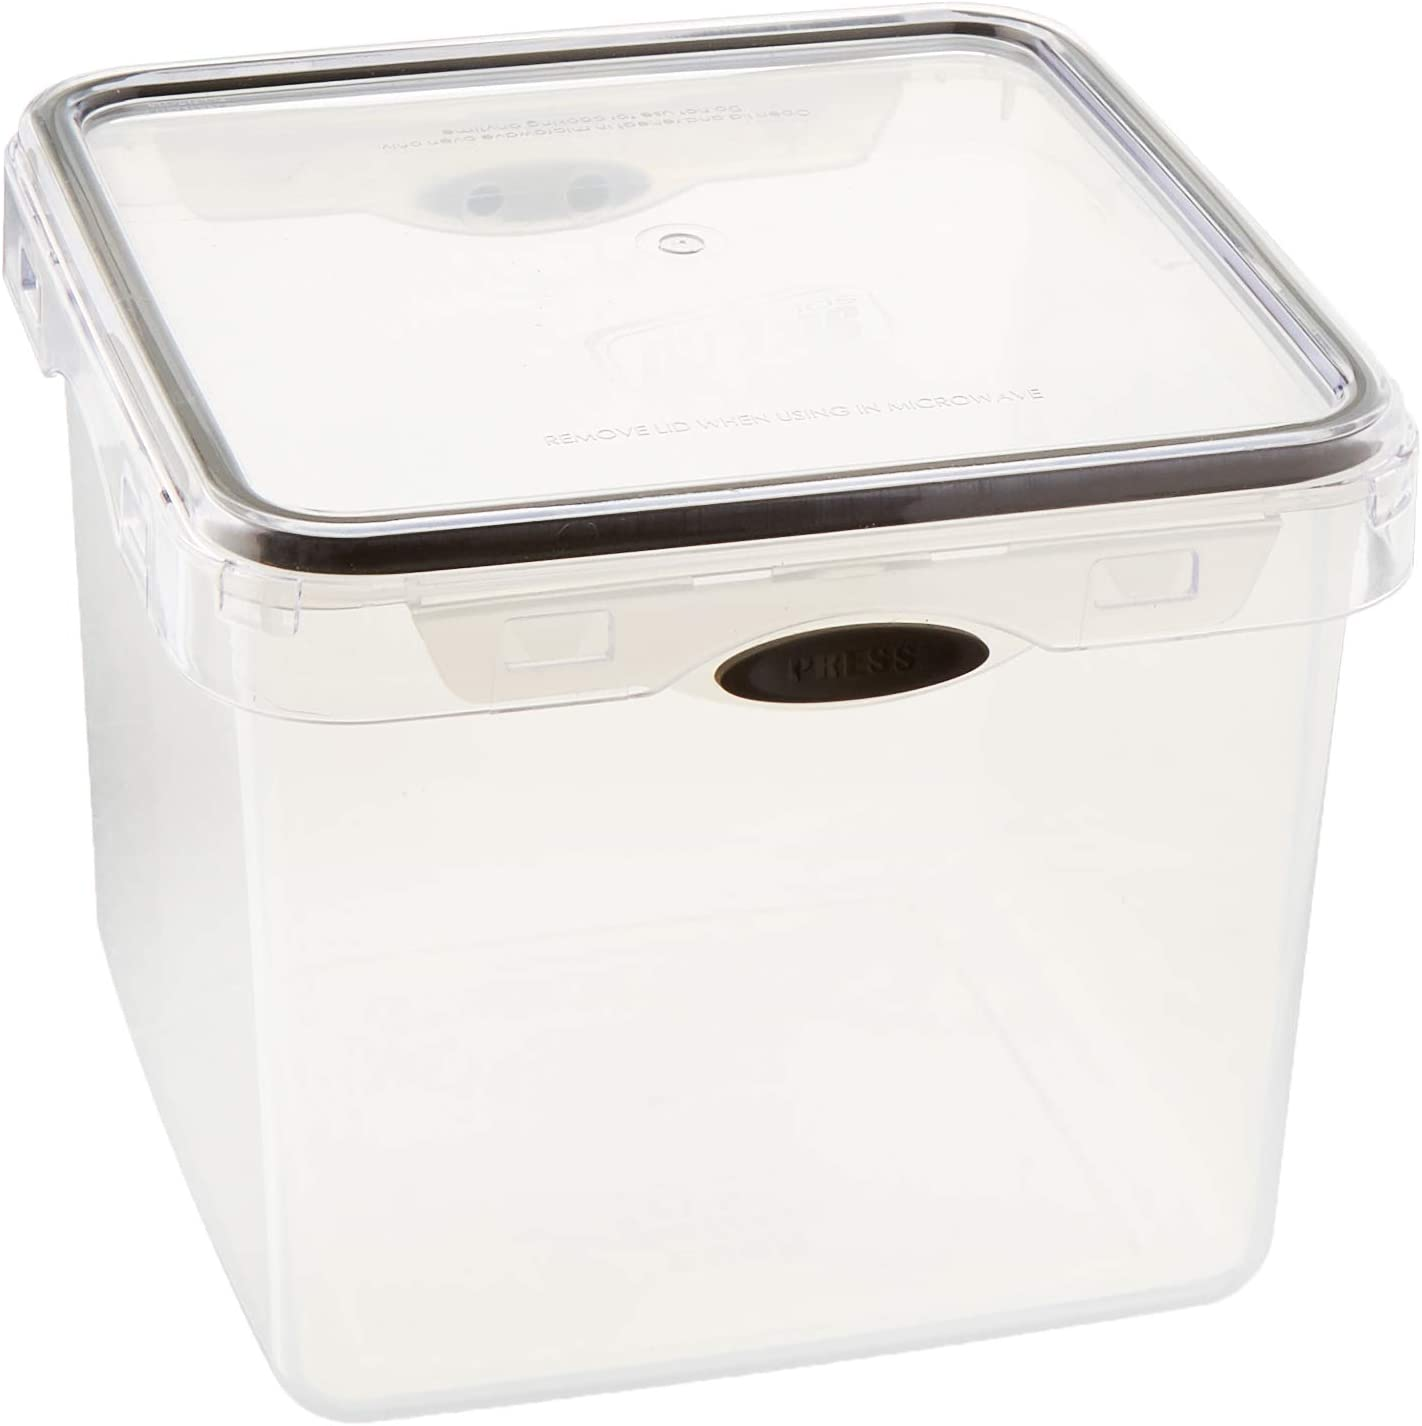 Stor-All Solutions Press N' Click Containers Square Food Storage Set, 9.5 Cup, Clear